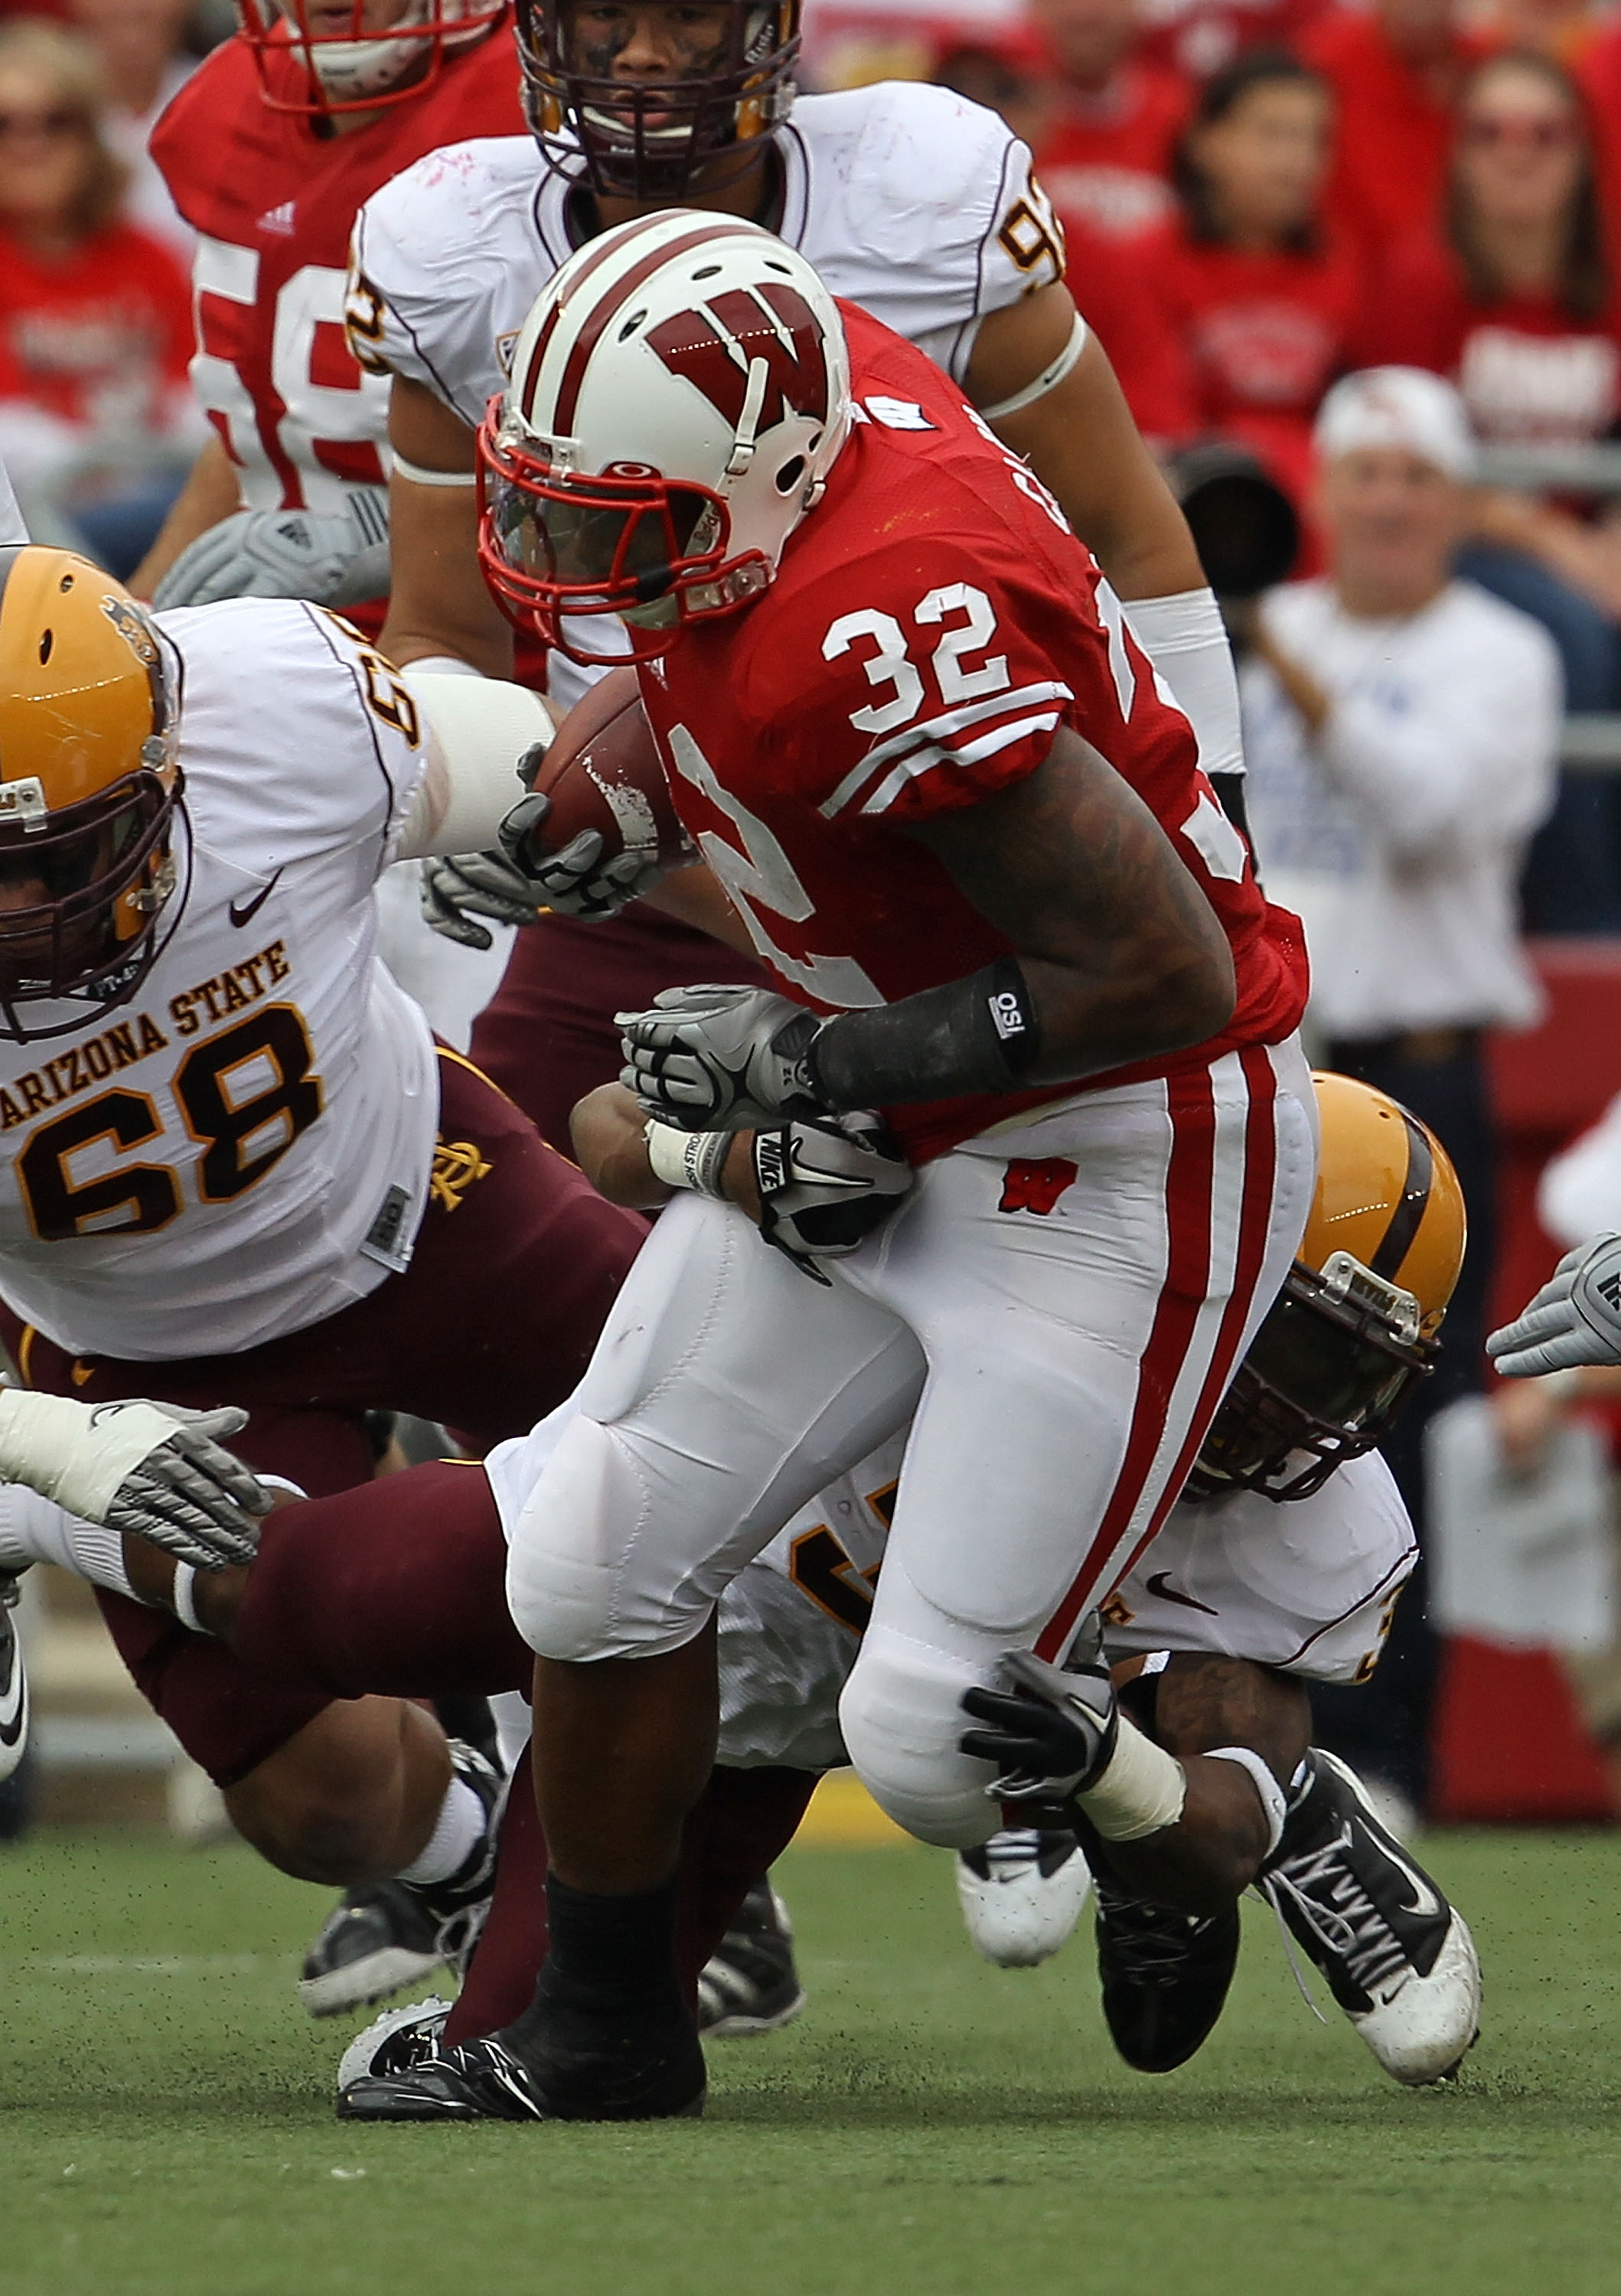 MADISON, WI - SEPTEMBER 18: John Clay #32 of the Wisconsin Badgers runs against the Arizona State Sun Devils at Camp Randall Stadium on September 18, 2010 in Madison, Wisconsin. Wisconsin defeated Arizona State 20-19. (Photo by Jonathan Daniel/Getty Image